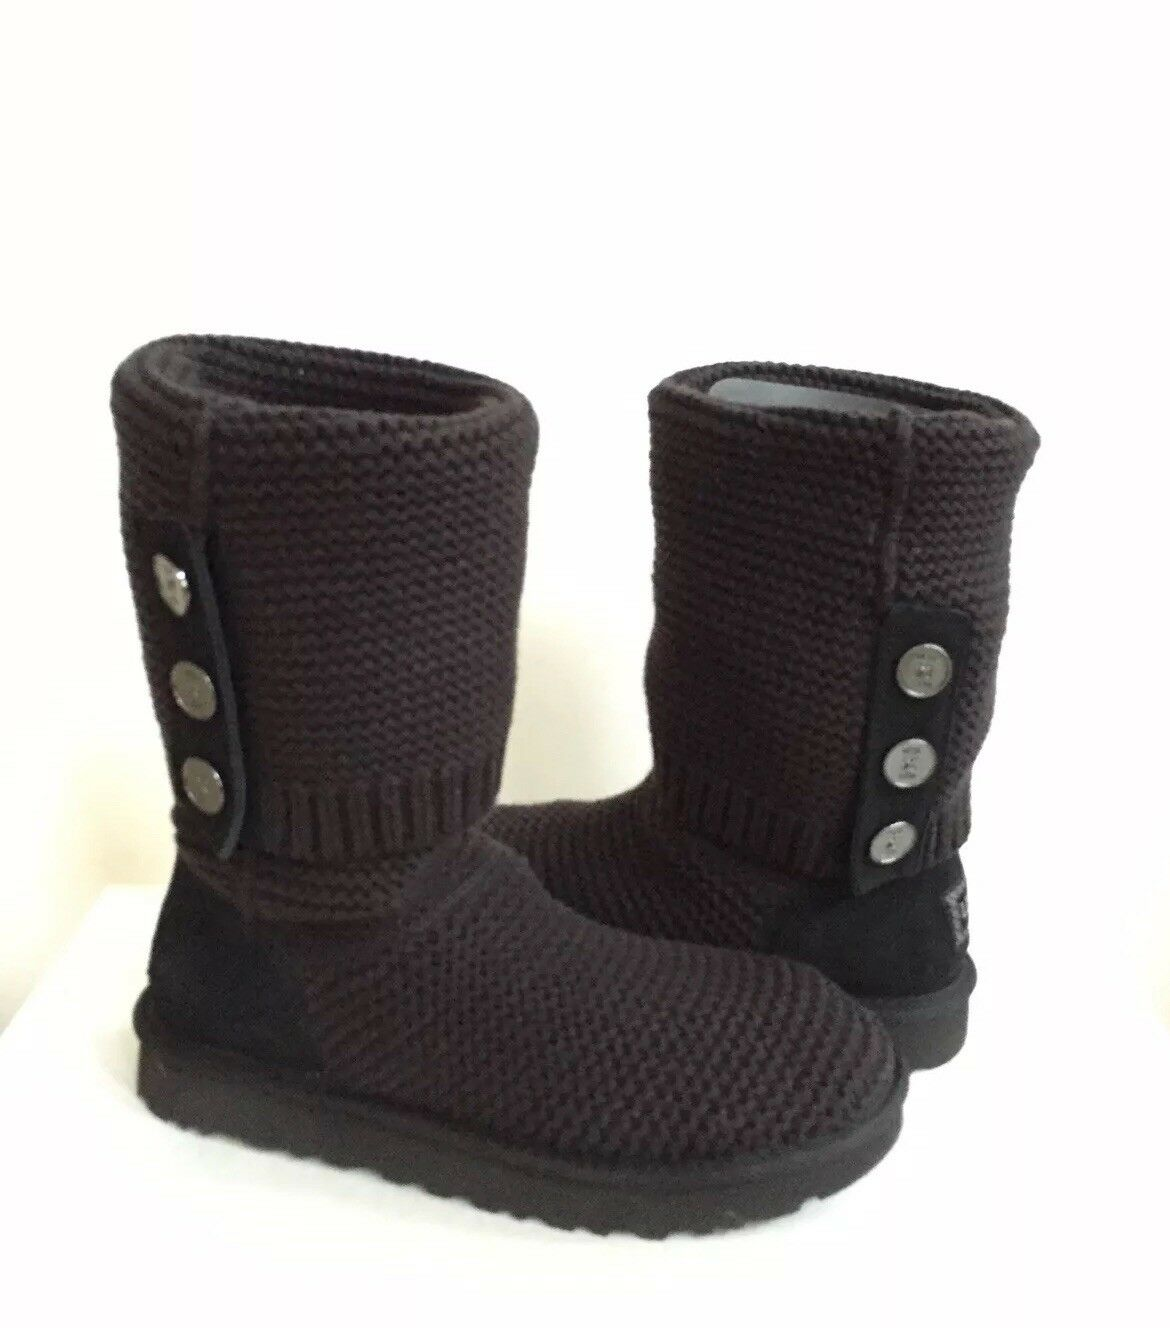 UGG CLASSIC CARDY PURL STRICK BLACK BOOT US 10 / EU 41 / UK 8 - NEU